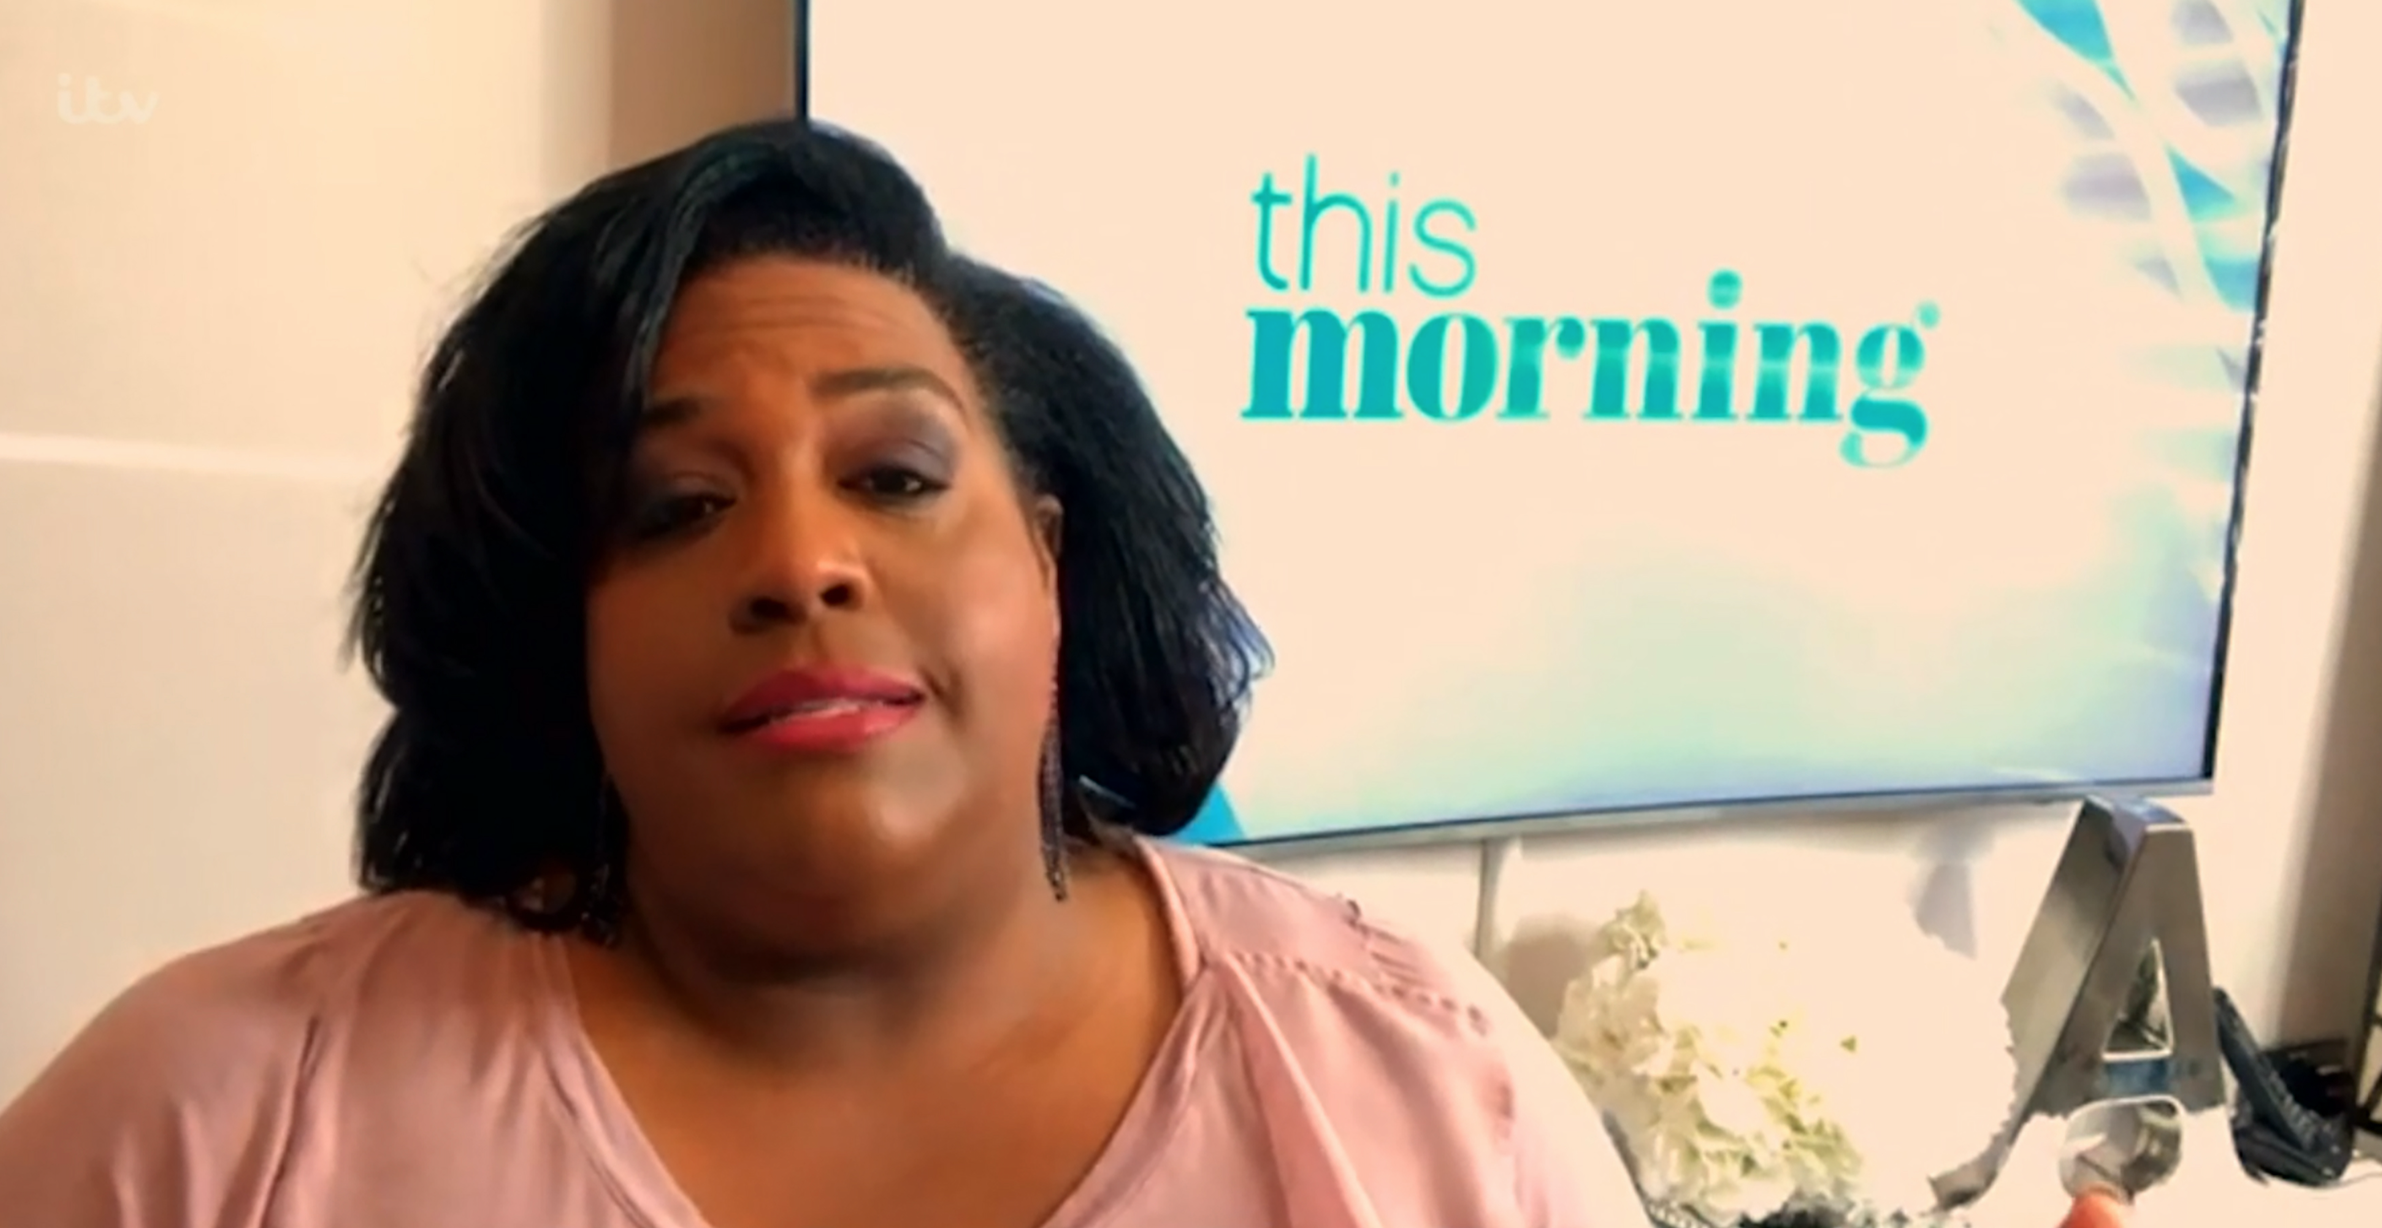 This Morning microwave cooking segment with Alison Hammond divides viewers